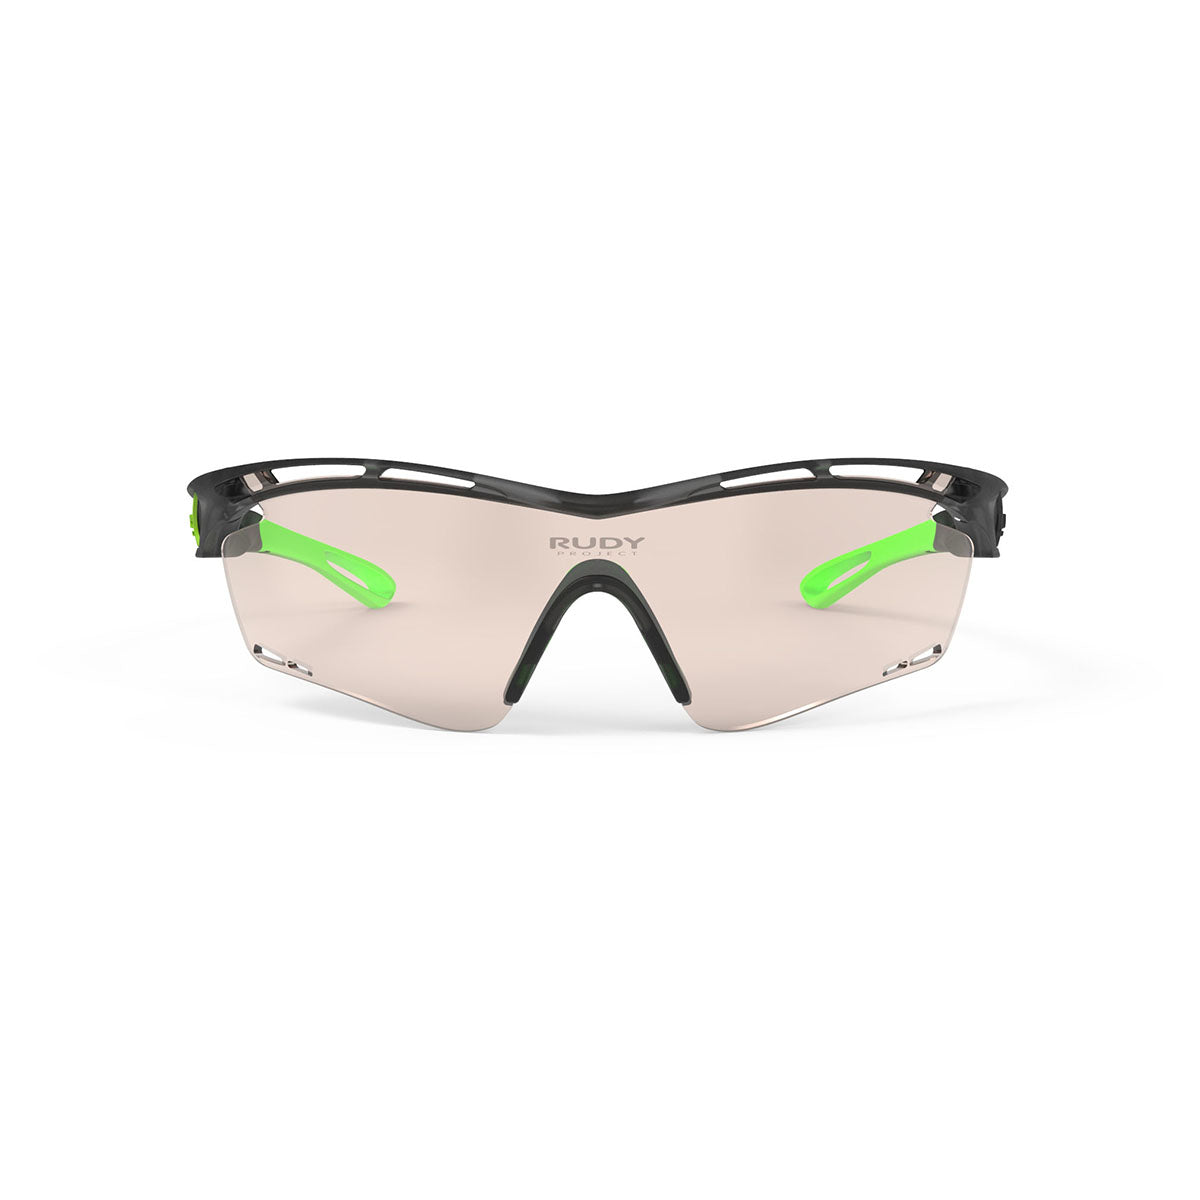 Rudy Project - Tralyx - frame color: Ice Graphite - lens color: ImpactX-2 Photochromic Clear to Laser Brown - photo angle: Front View Variant Hover Image